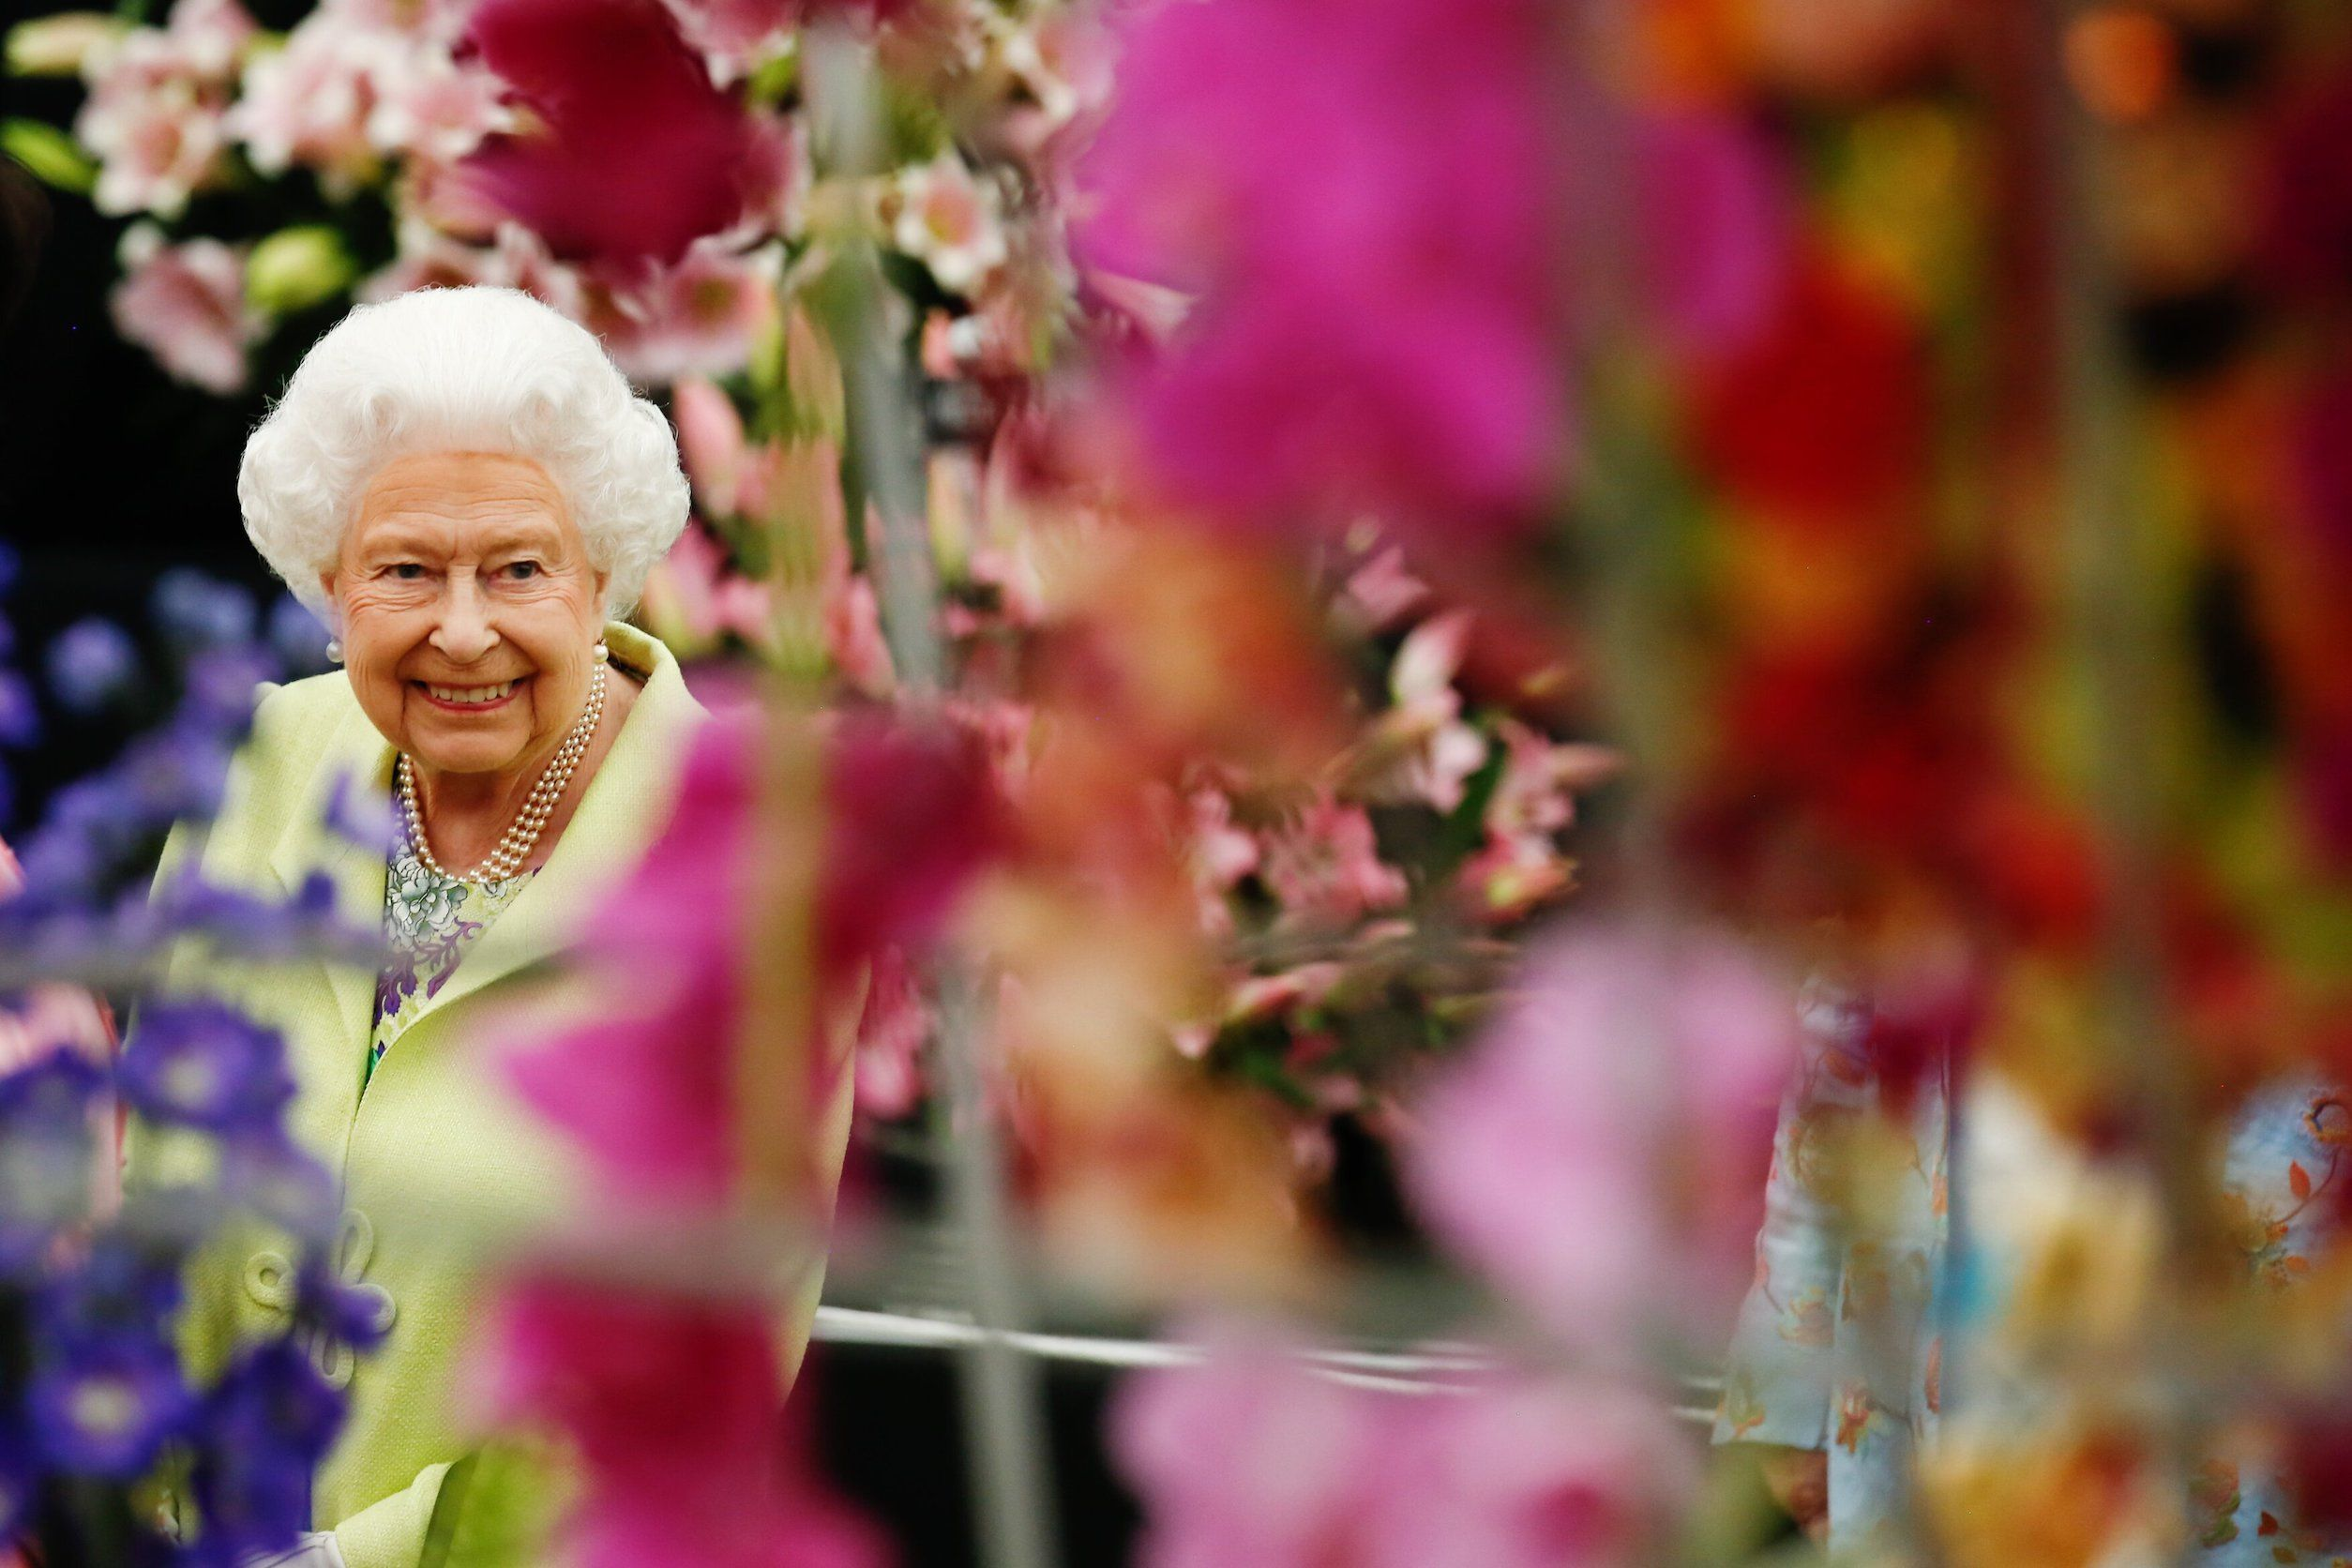 Chelsea Flower Show: The Queen praises Brits' passion for gardening as the RHS launches virtual show